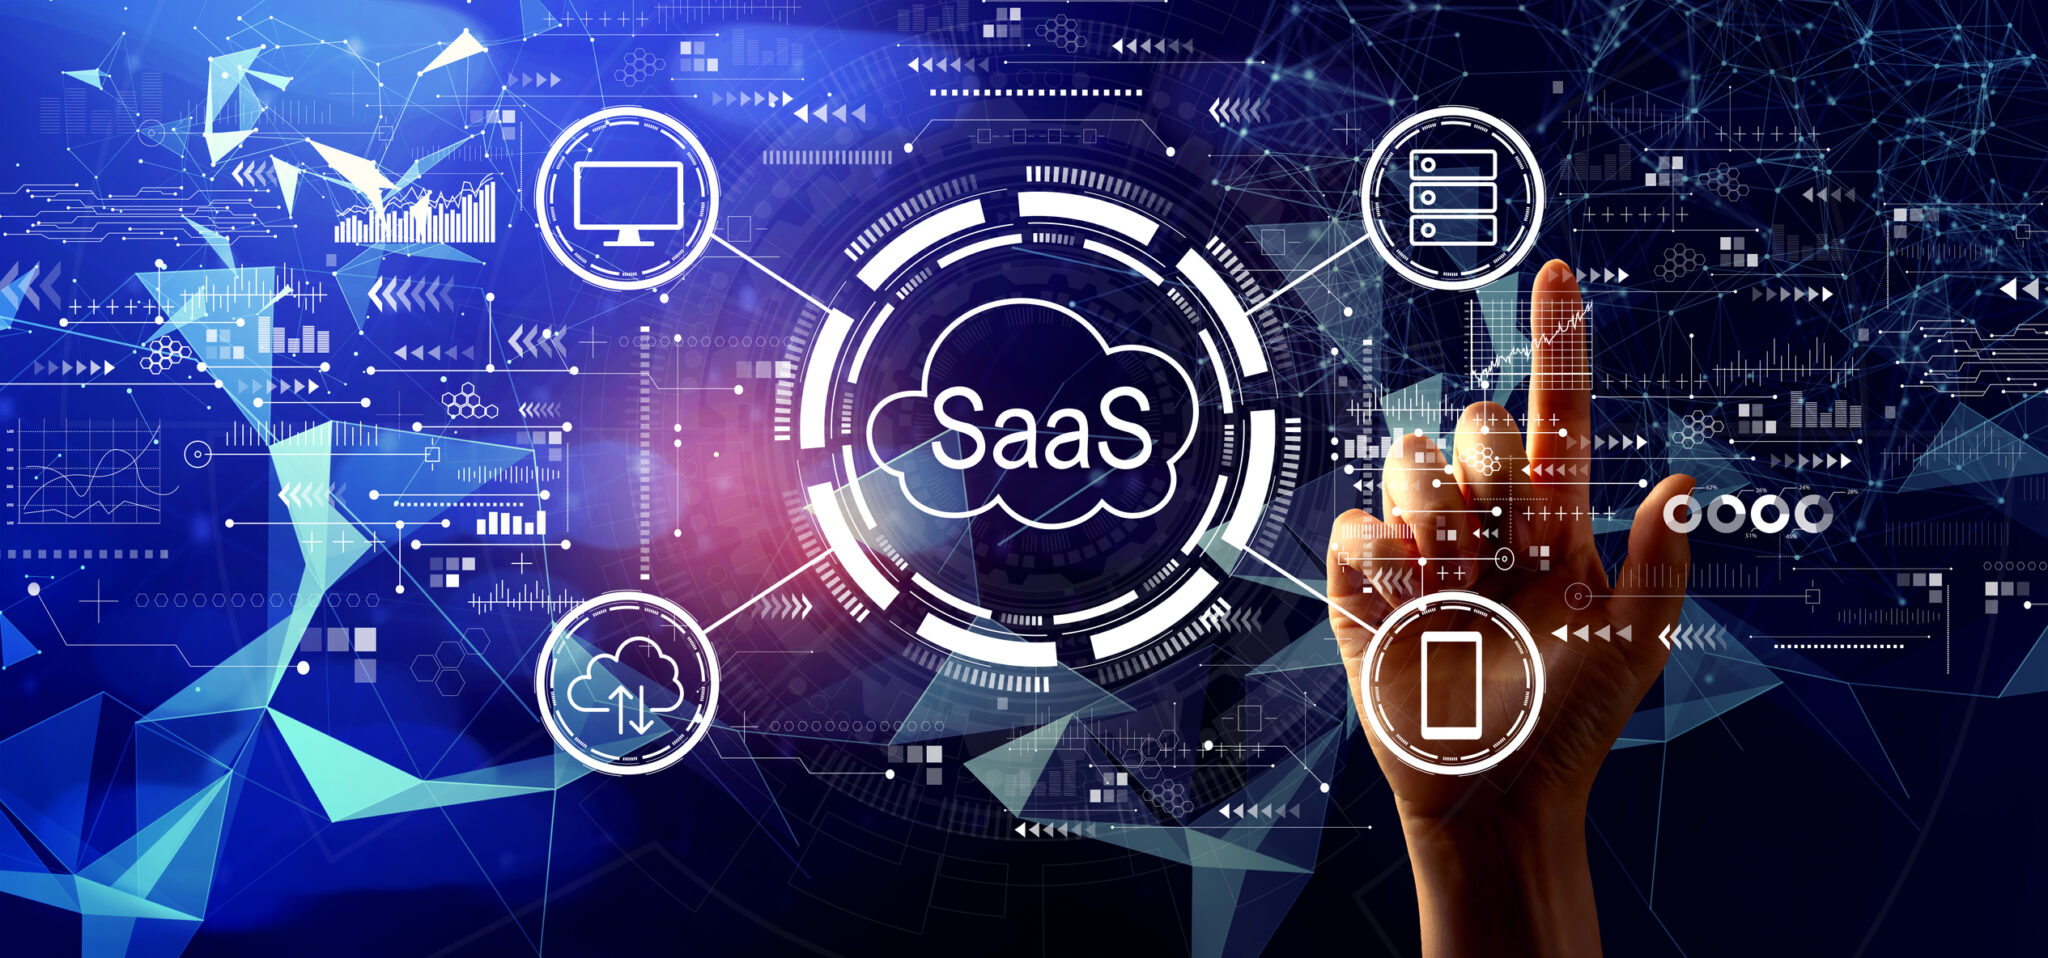 SaaS - Fintech Software as a service